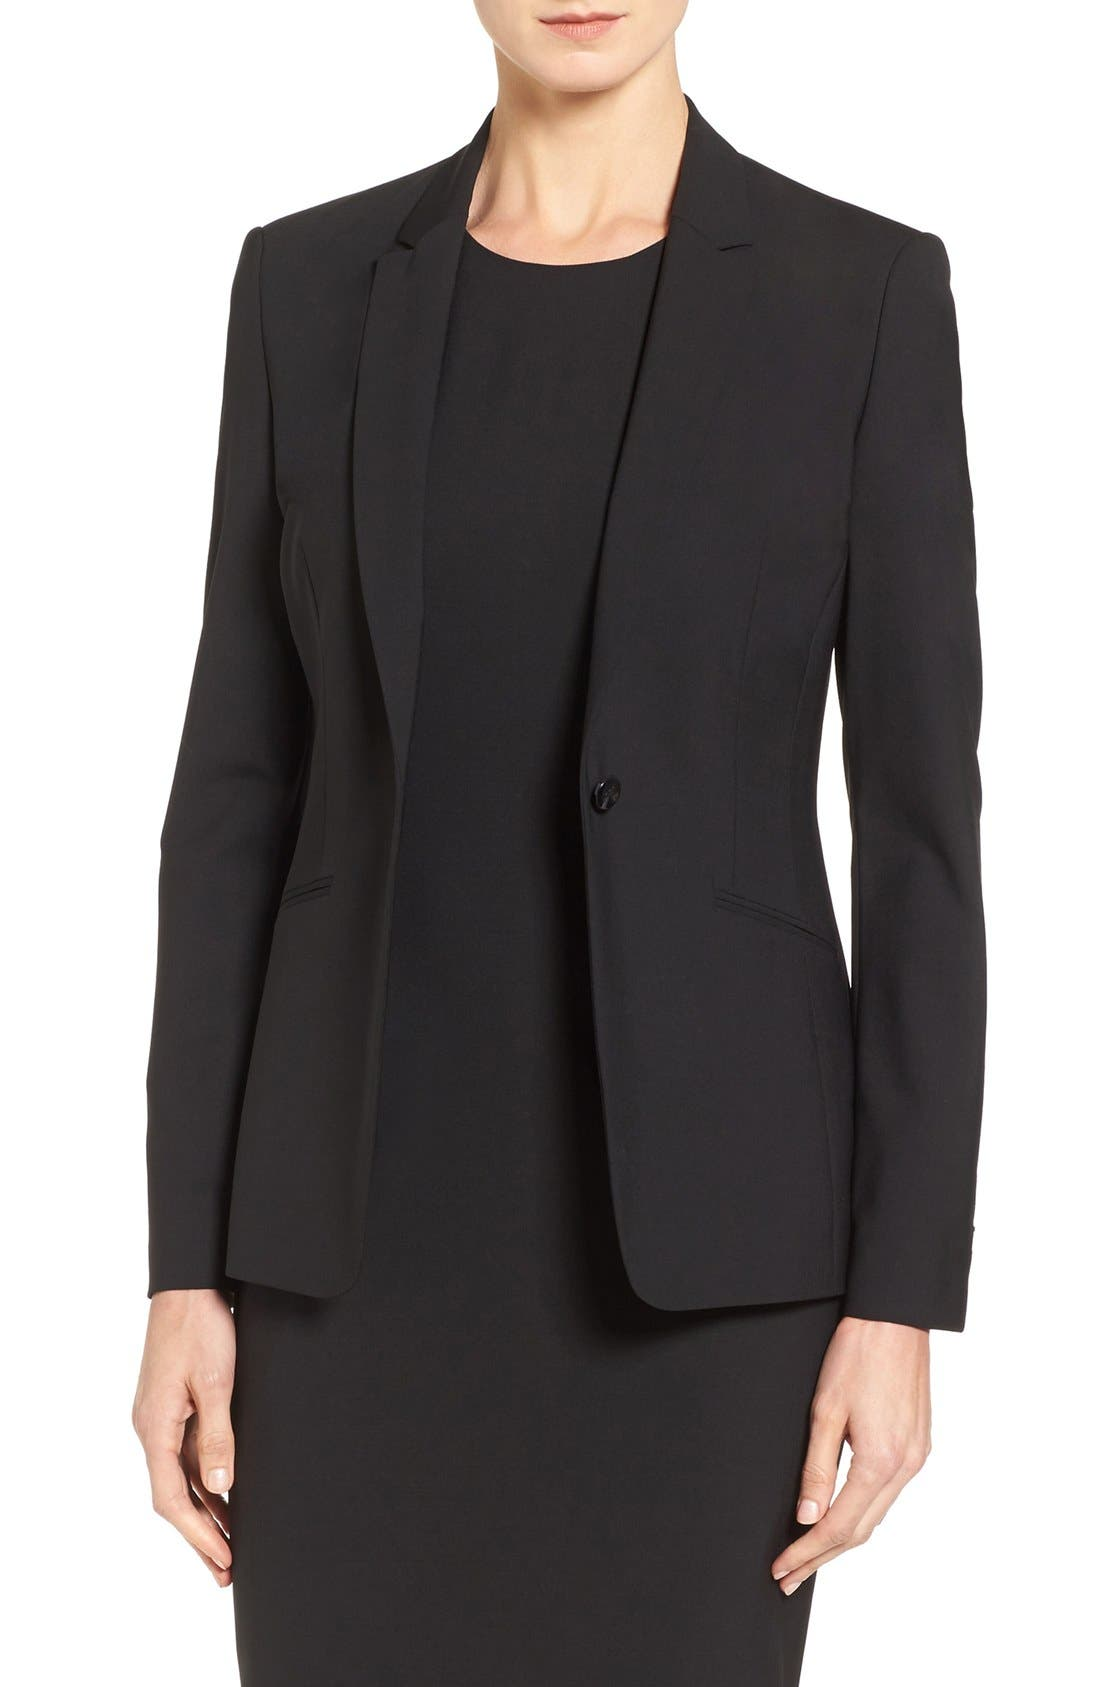 Jabina Tropical Stretch Wool Jacket,                         Main,                         color, BLACK